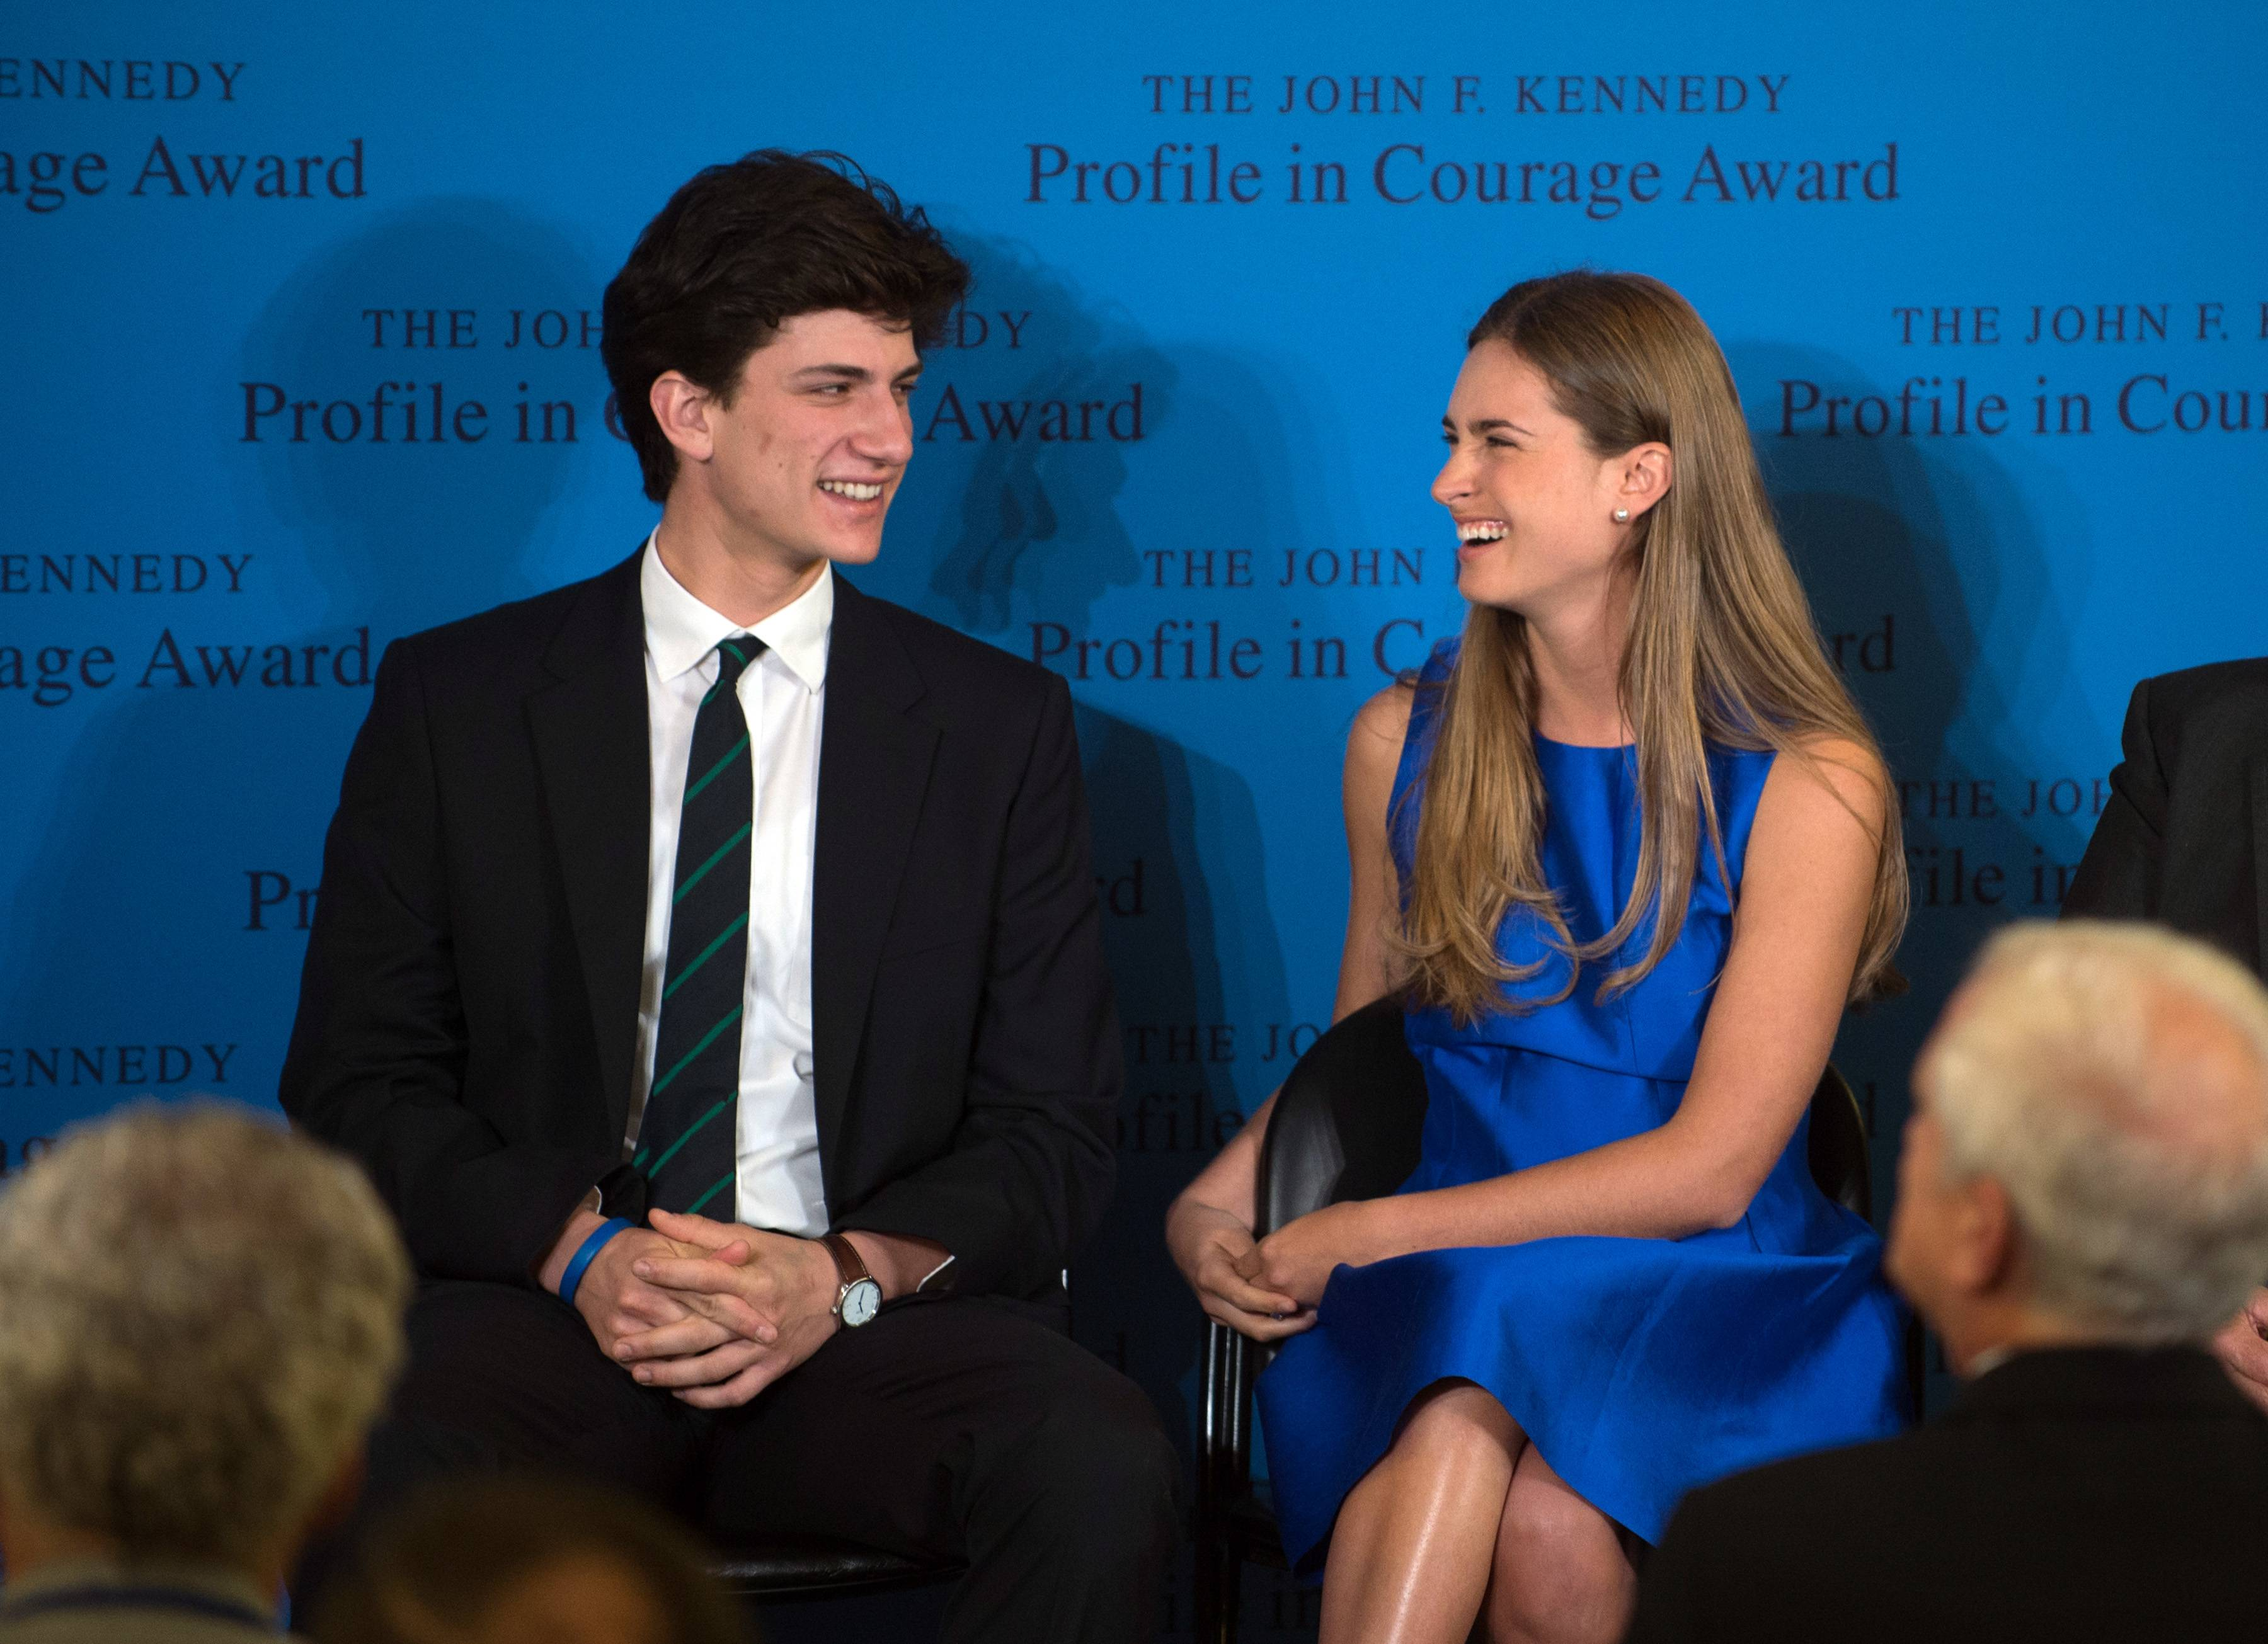 Lauren Bush Lauren, right, granddaughter of former President George H.W. Bush, laughs with Jack Schlossberg, grandson of former President John F. Kennedy, before accepting the 2014 John F. Kennedy Profile in Courage Award on behalf of her grandfather during a ceremony at the John F. Kennedy Library and Museum Sunday in Boston.